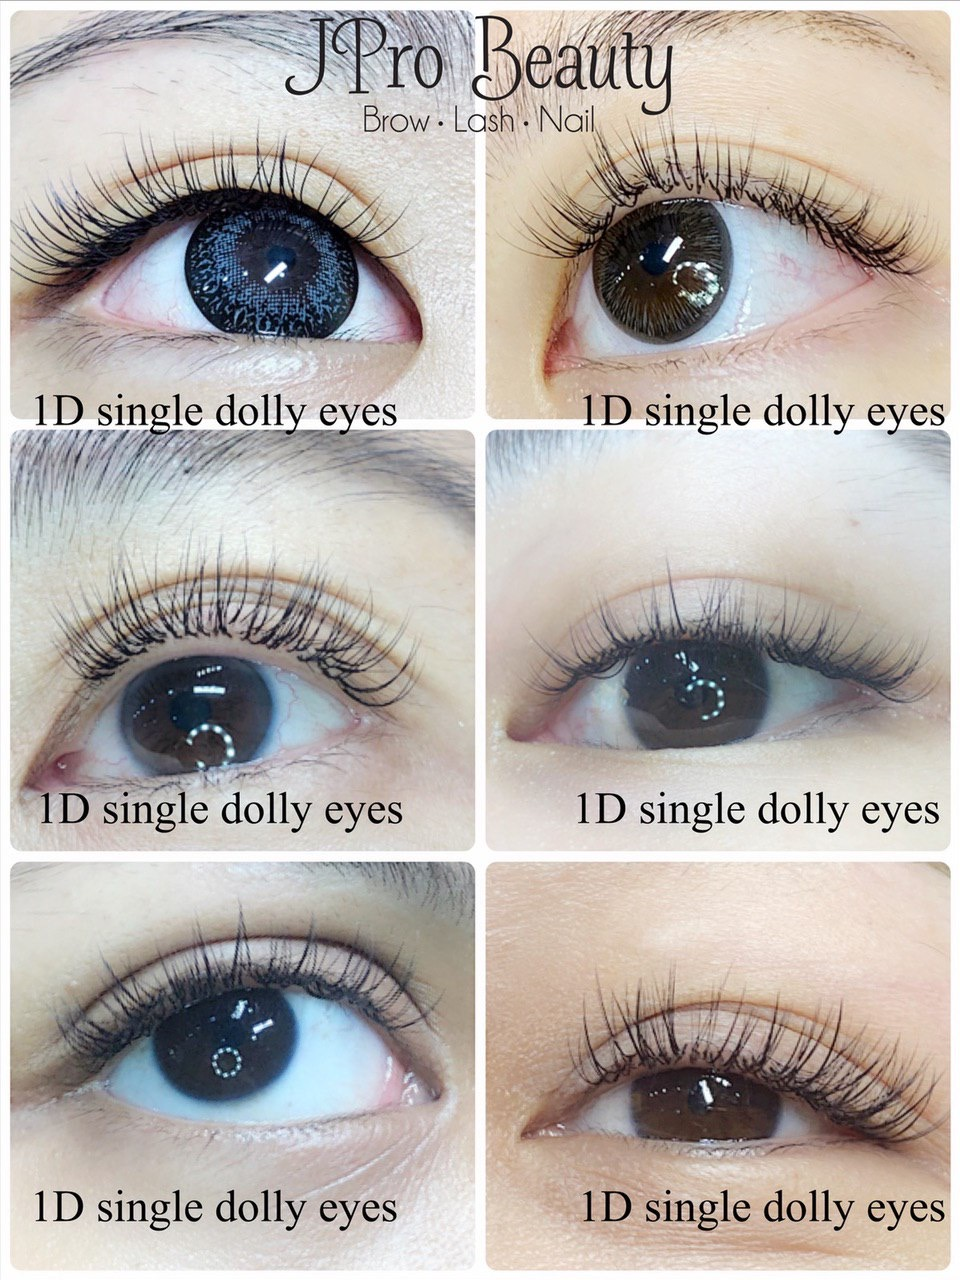 eyelash extensions what do i need to know_natural 1d